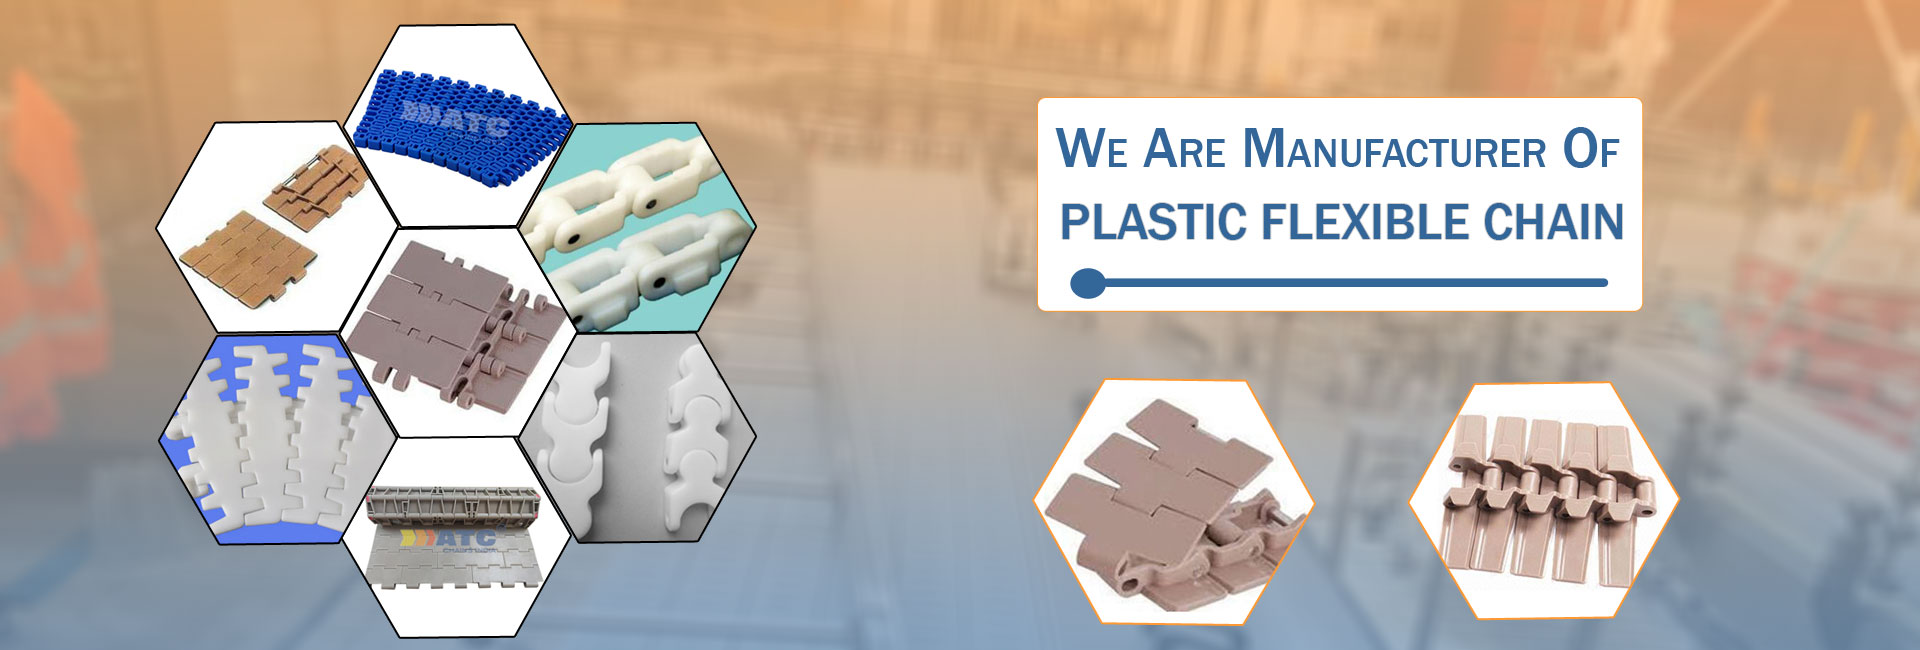 Thermoplastic Chain Manufacturer & Supplier in Coimbatore